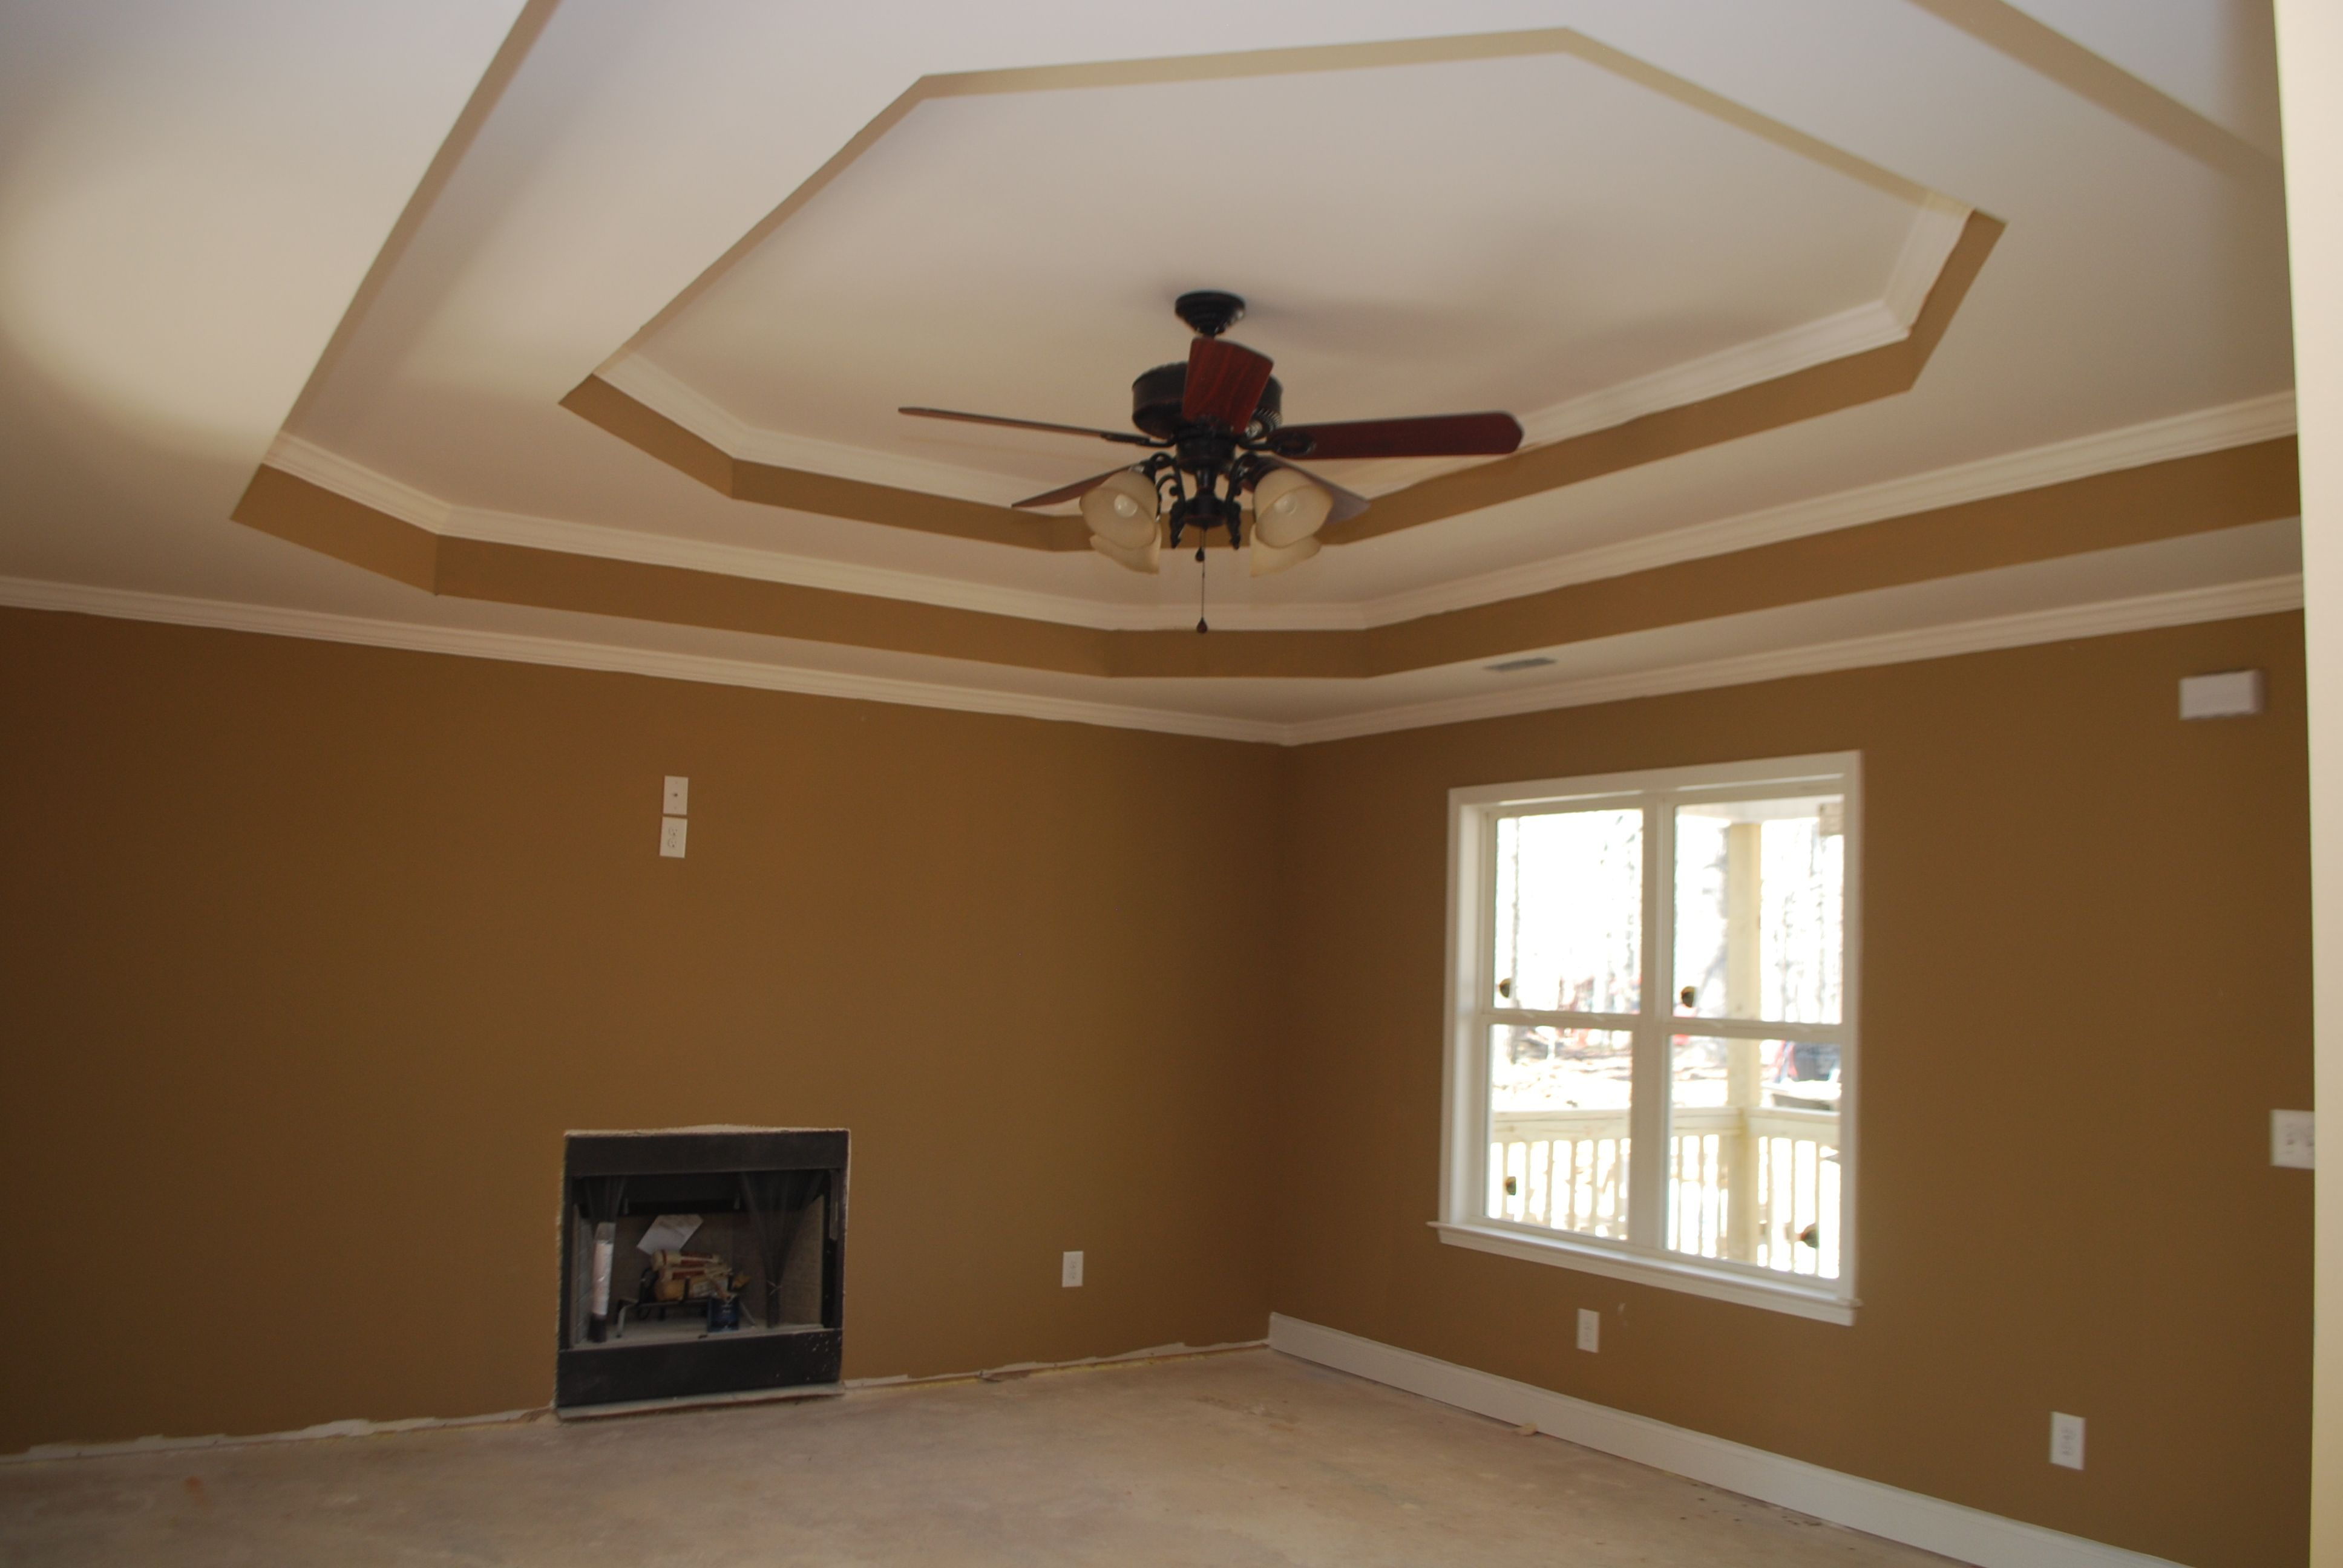 Double Step Tray Ceiling The Color Of The Living Room Is Benjamin Moore Tyler Taupe Colored Ceiling Luxe Living Room White Ceiling